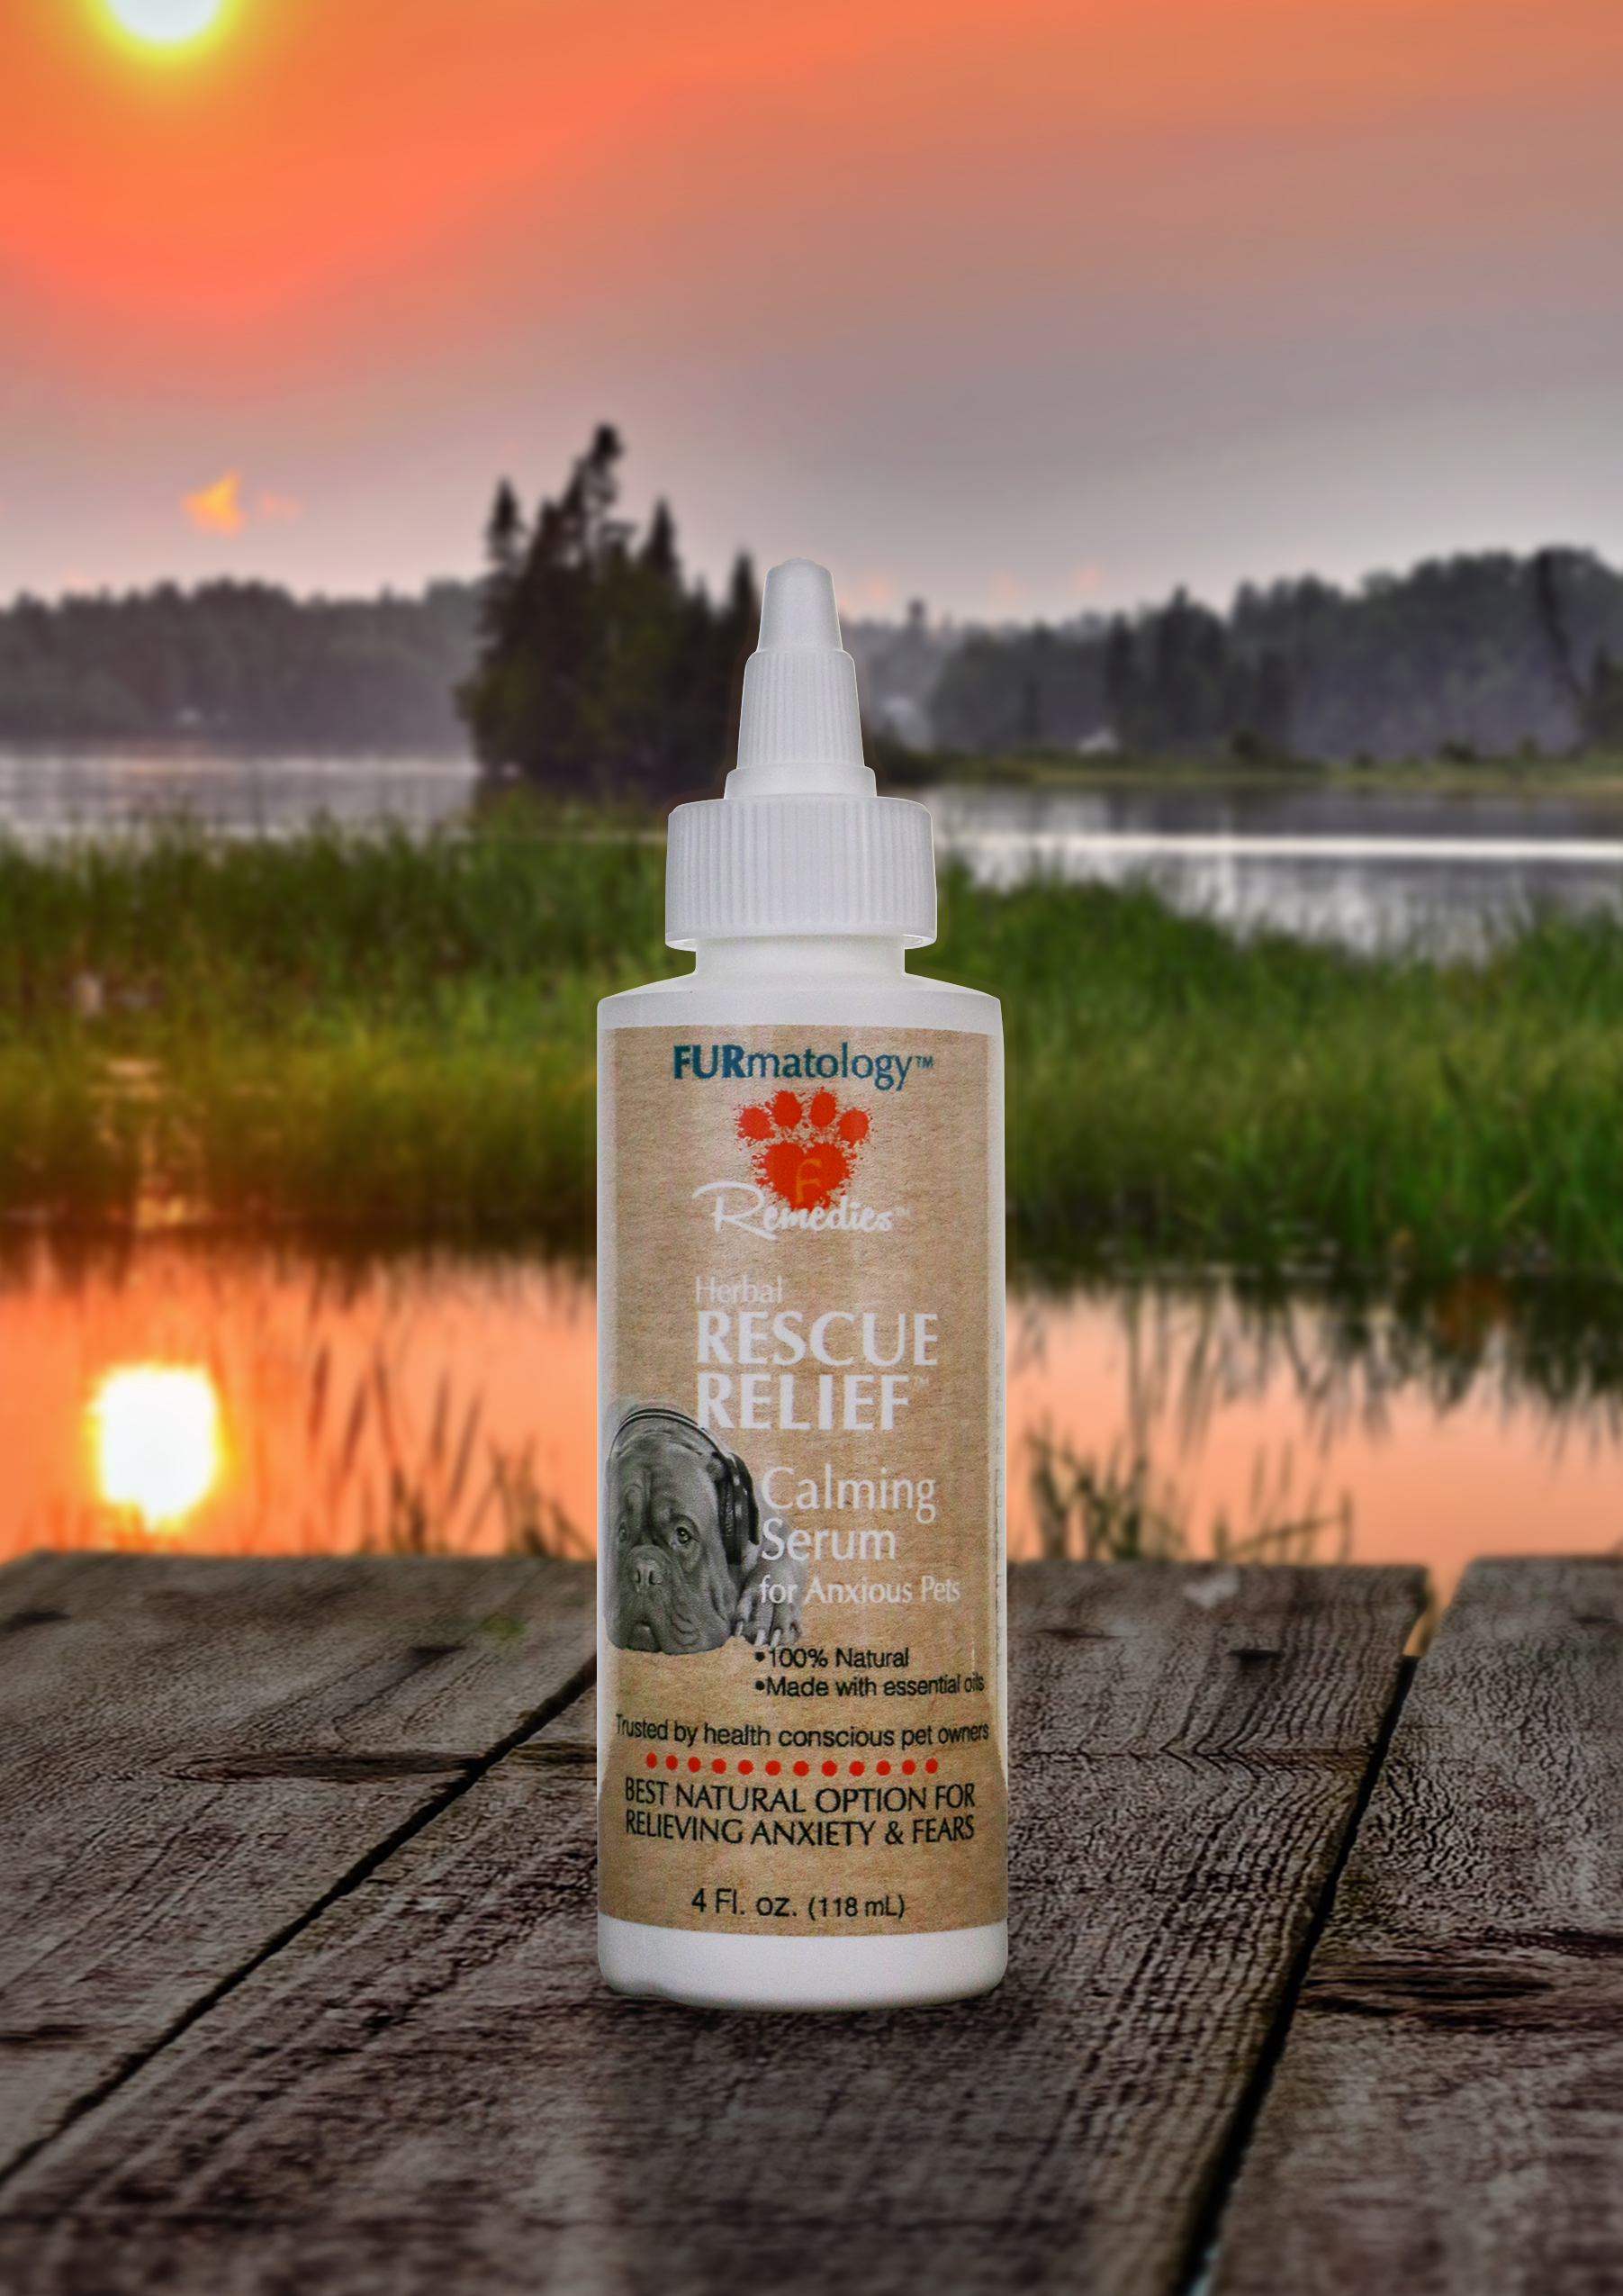 Furmatology Herbal RESCUE RELIEF Calming Serum